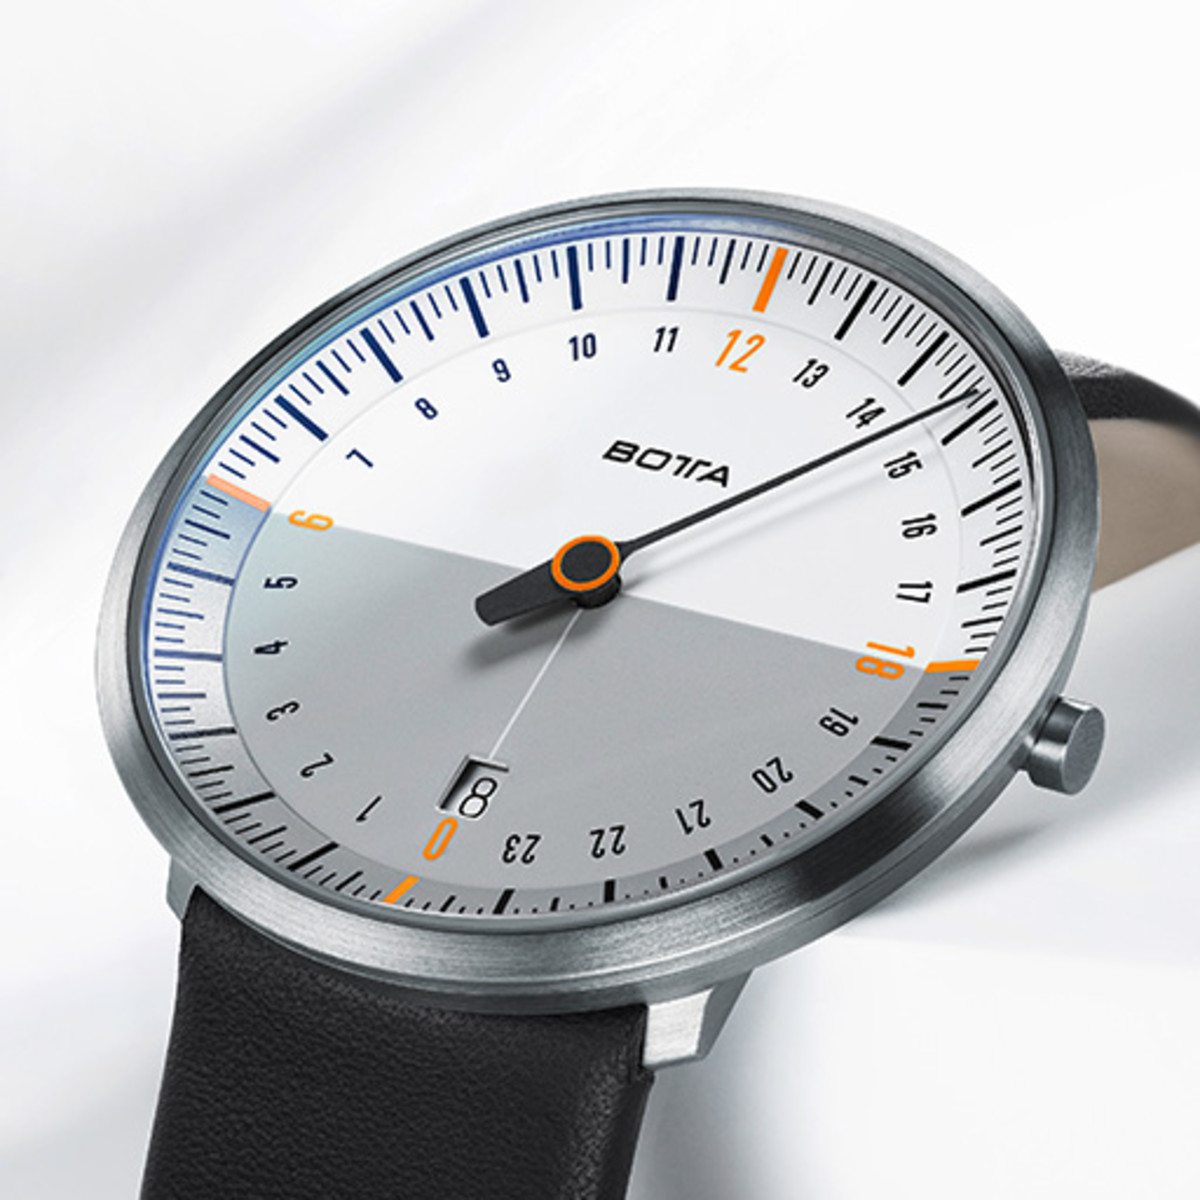 botta-design-uno-24-neo-watch-03